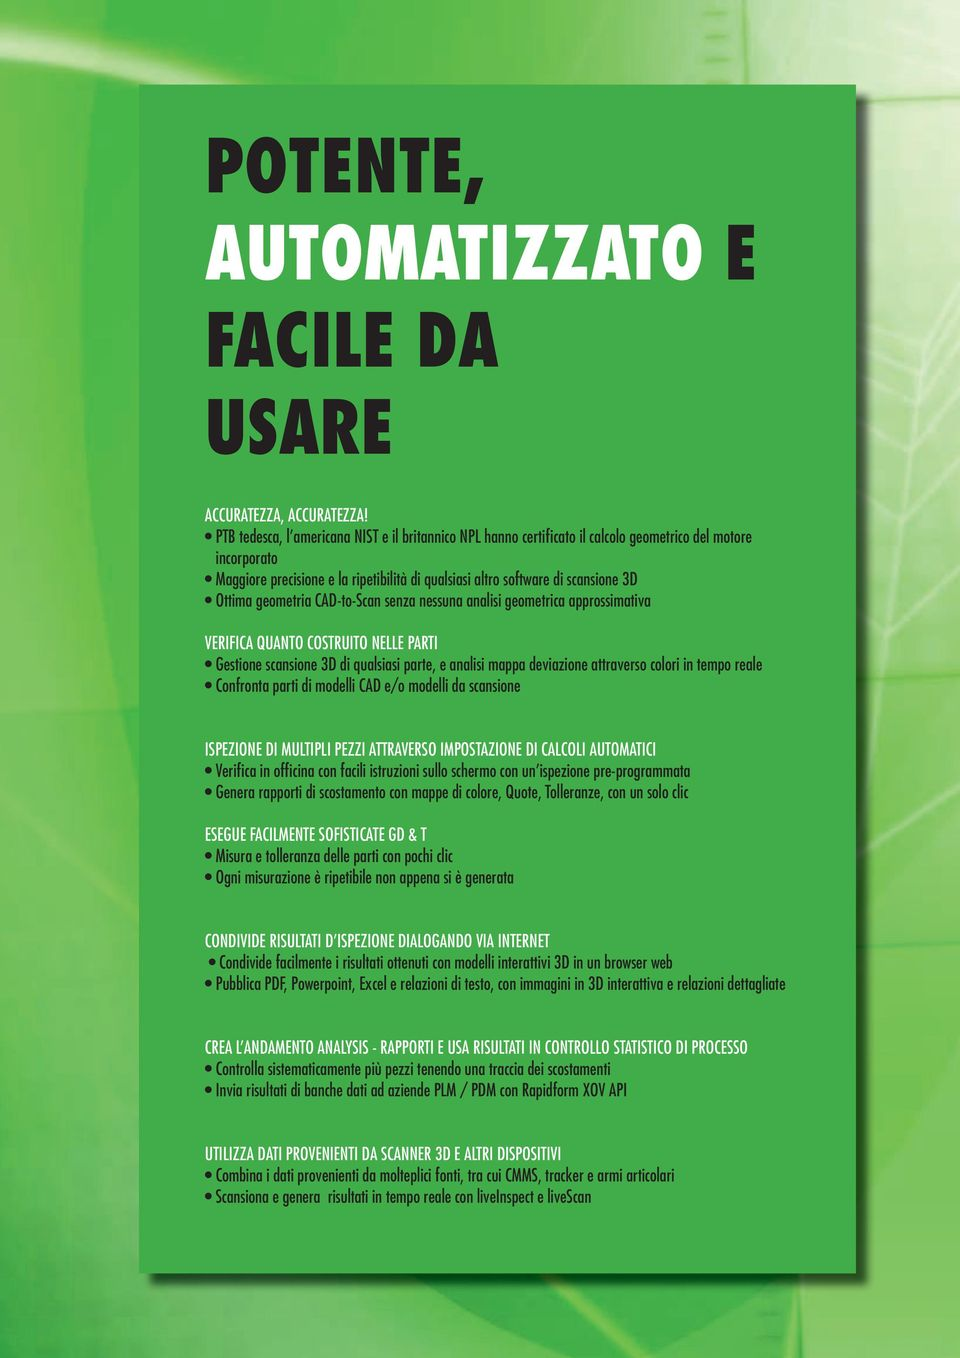 di qualsiasi altro software di scansione 3D Ottima German geometria PTB, American CAD-to-Scan NIST and senza British nessuna NPL certified analisi geometrica calculation approssimativa engine